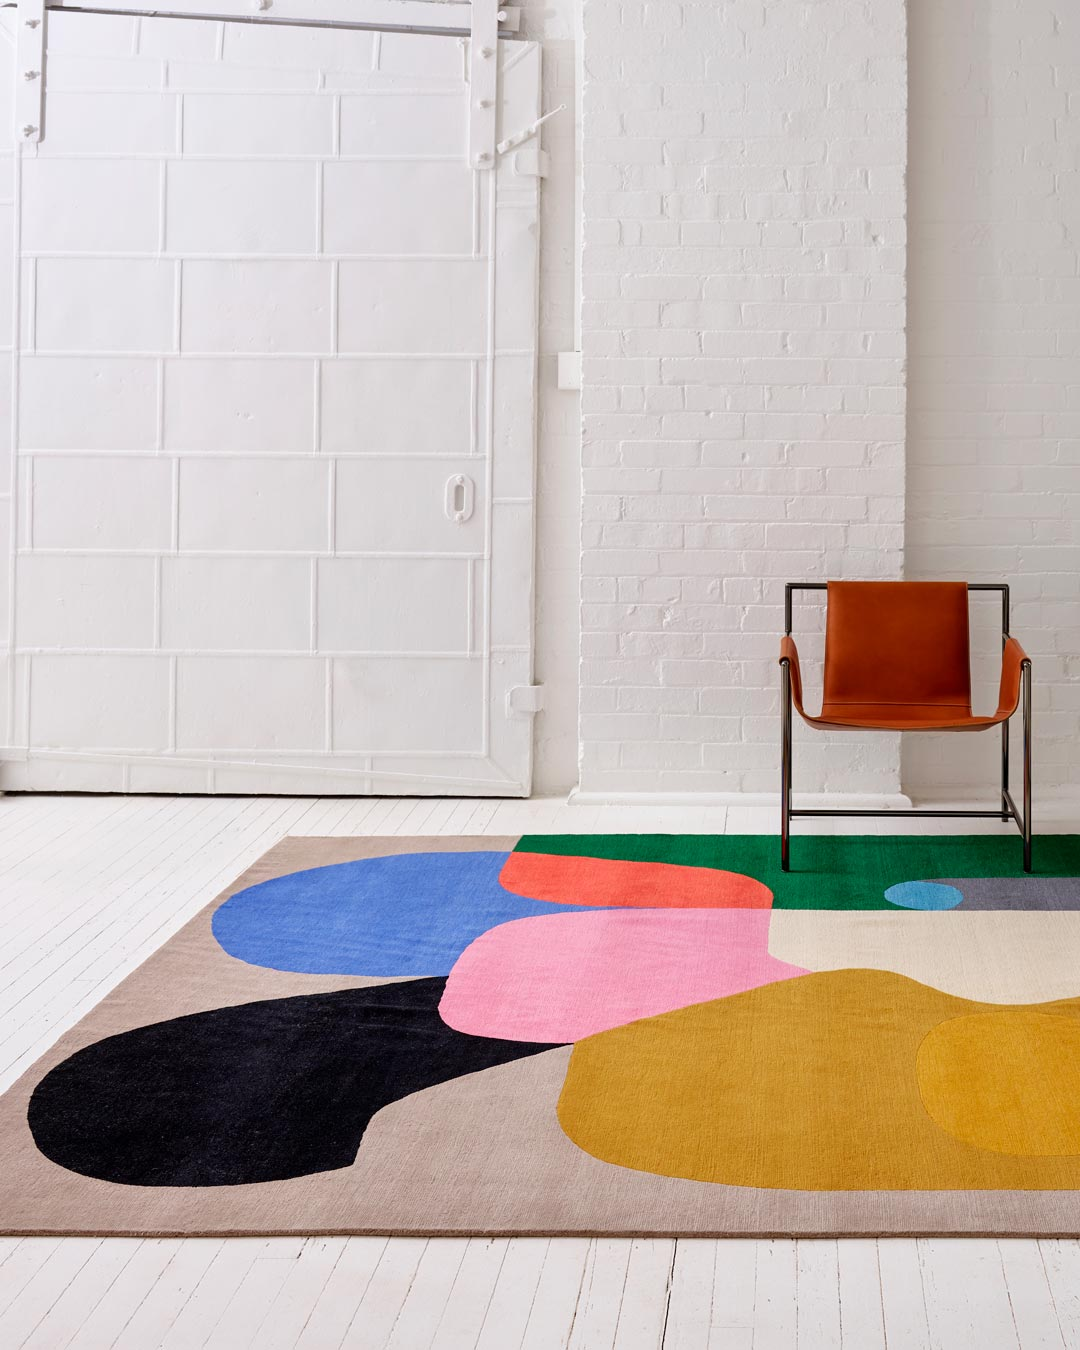 Entrance view of modern Crowded Room rug by Stephen Ormandy